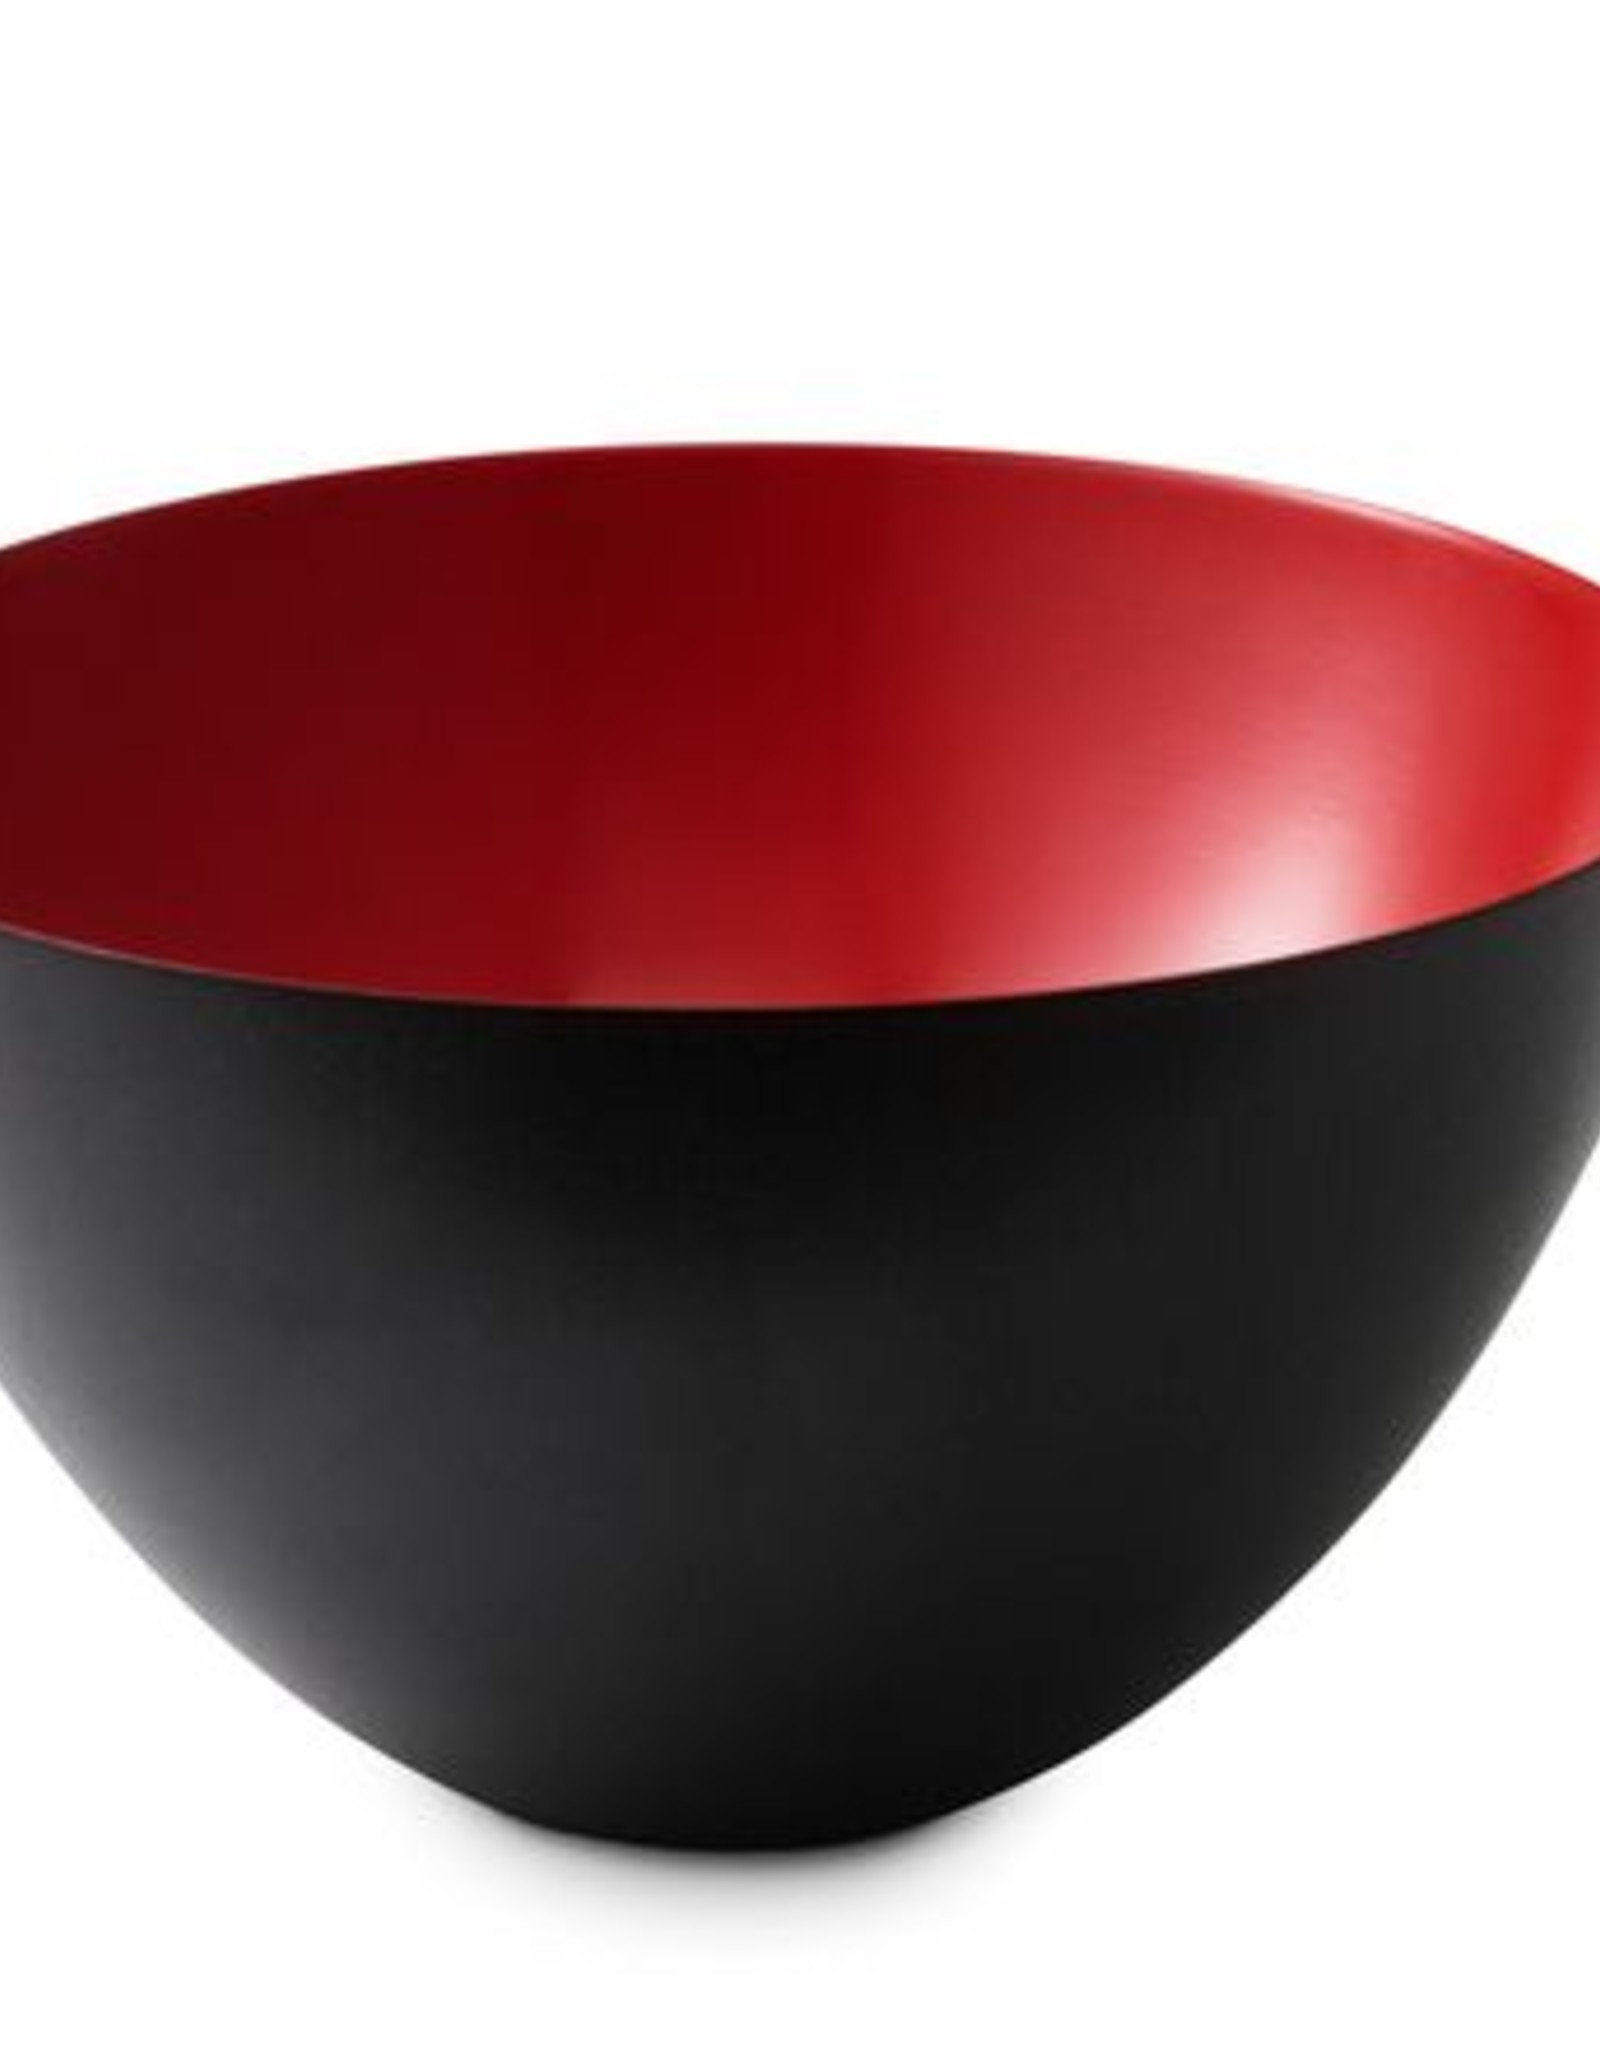 Normann Copenhagen Krenit red Large